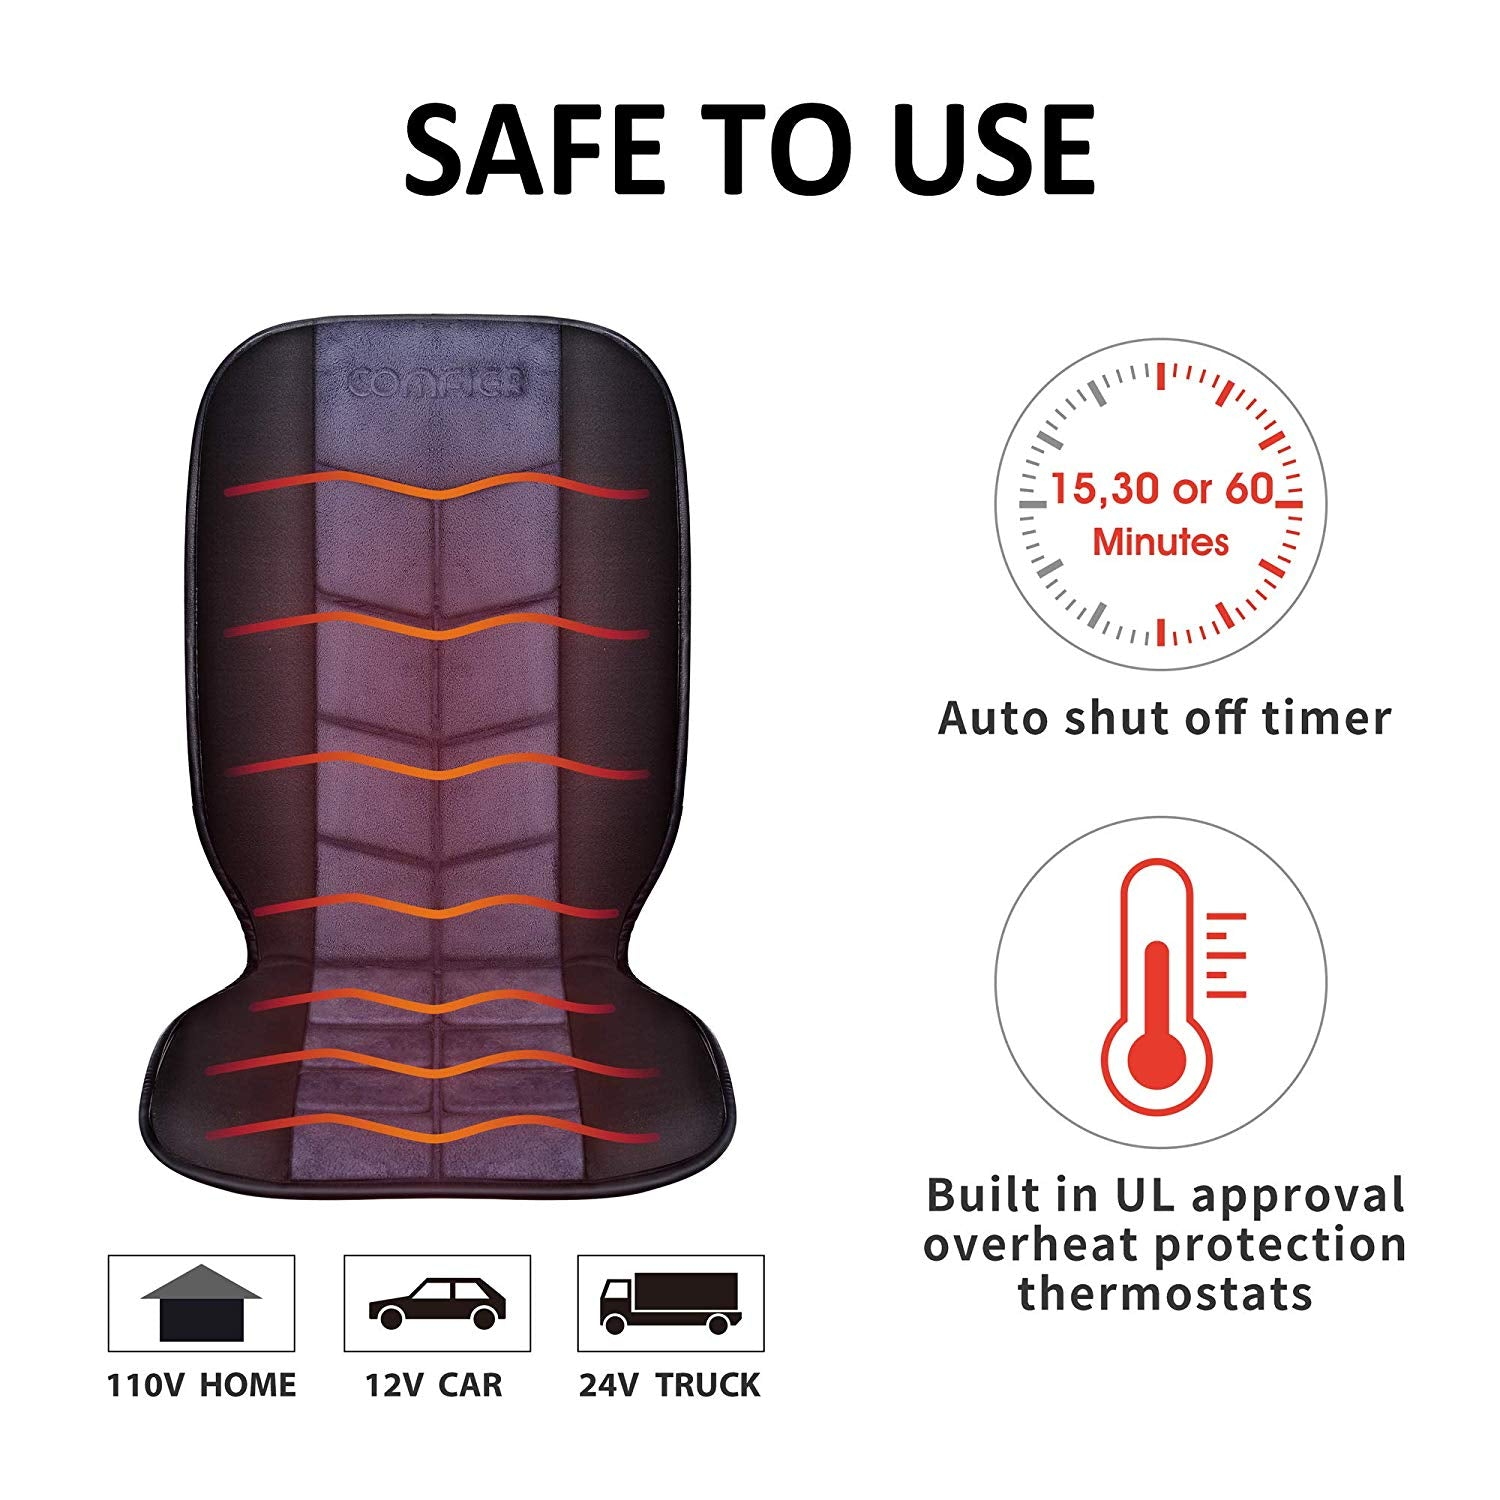 Comfier Heated Car Seat Cushion Deluxe